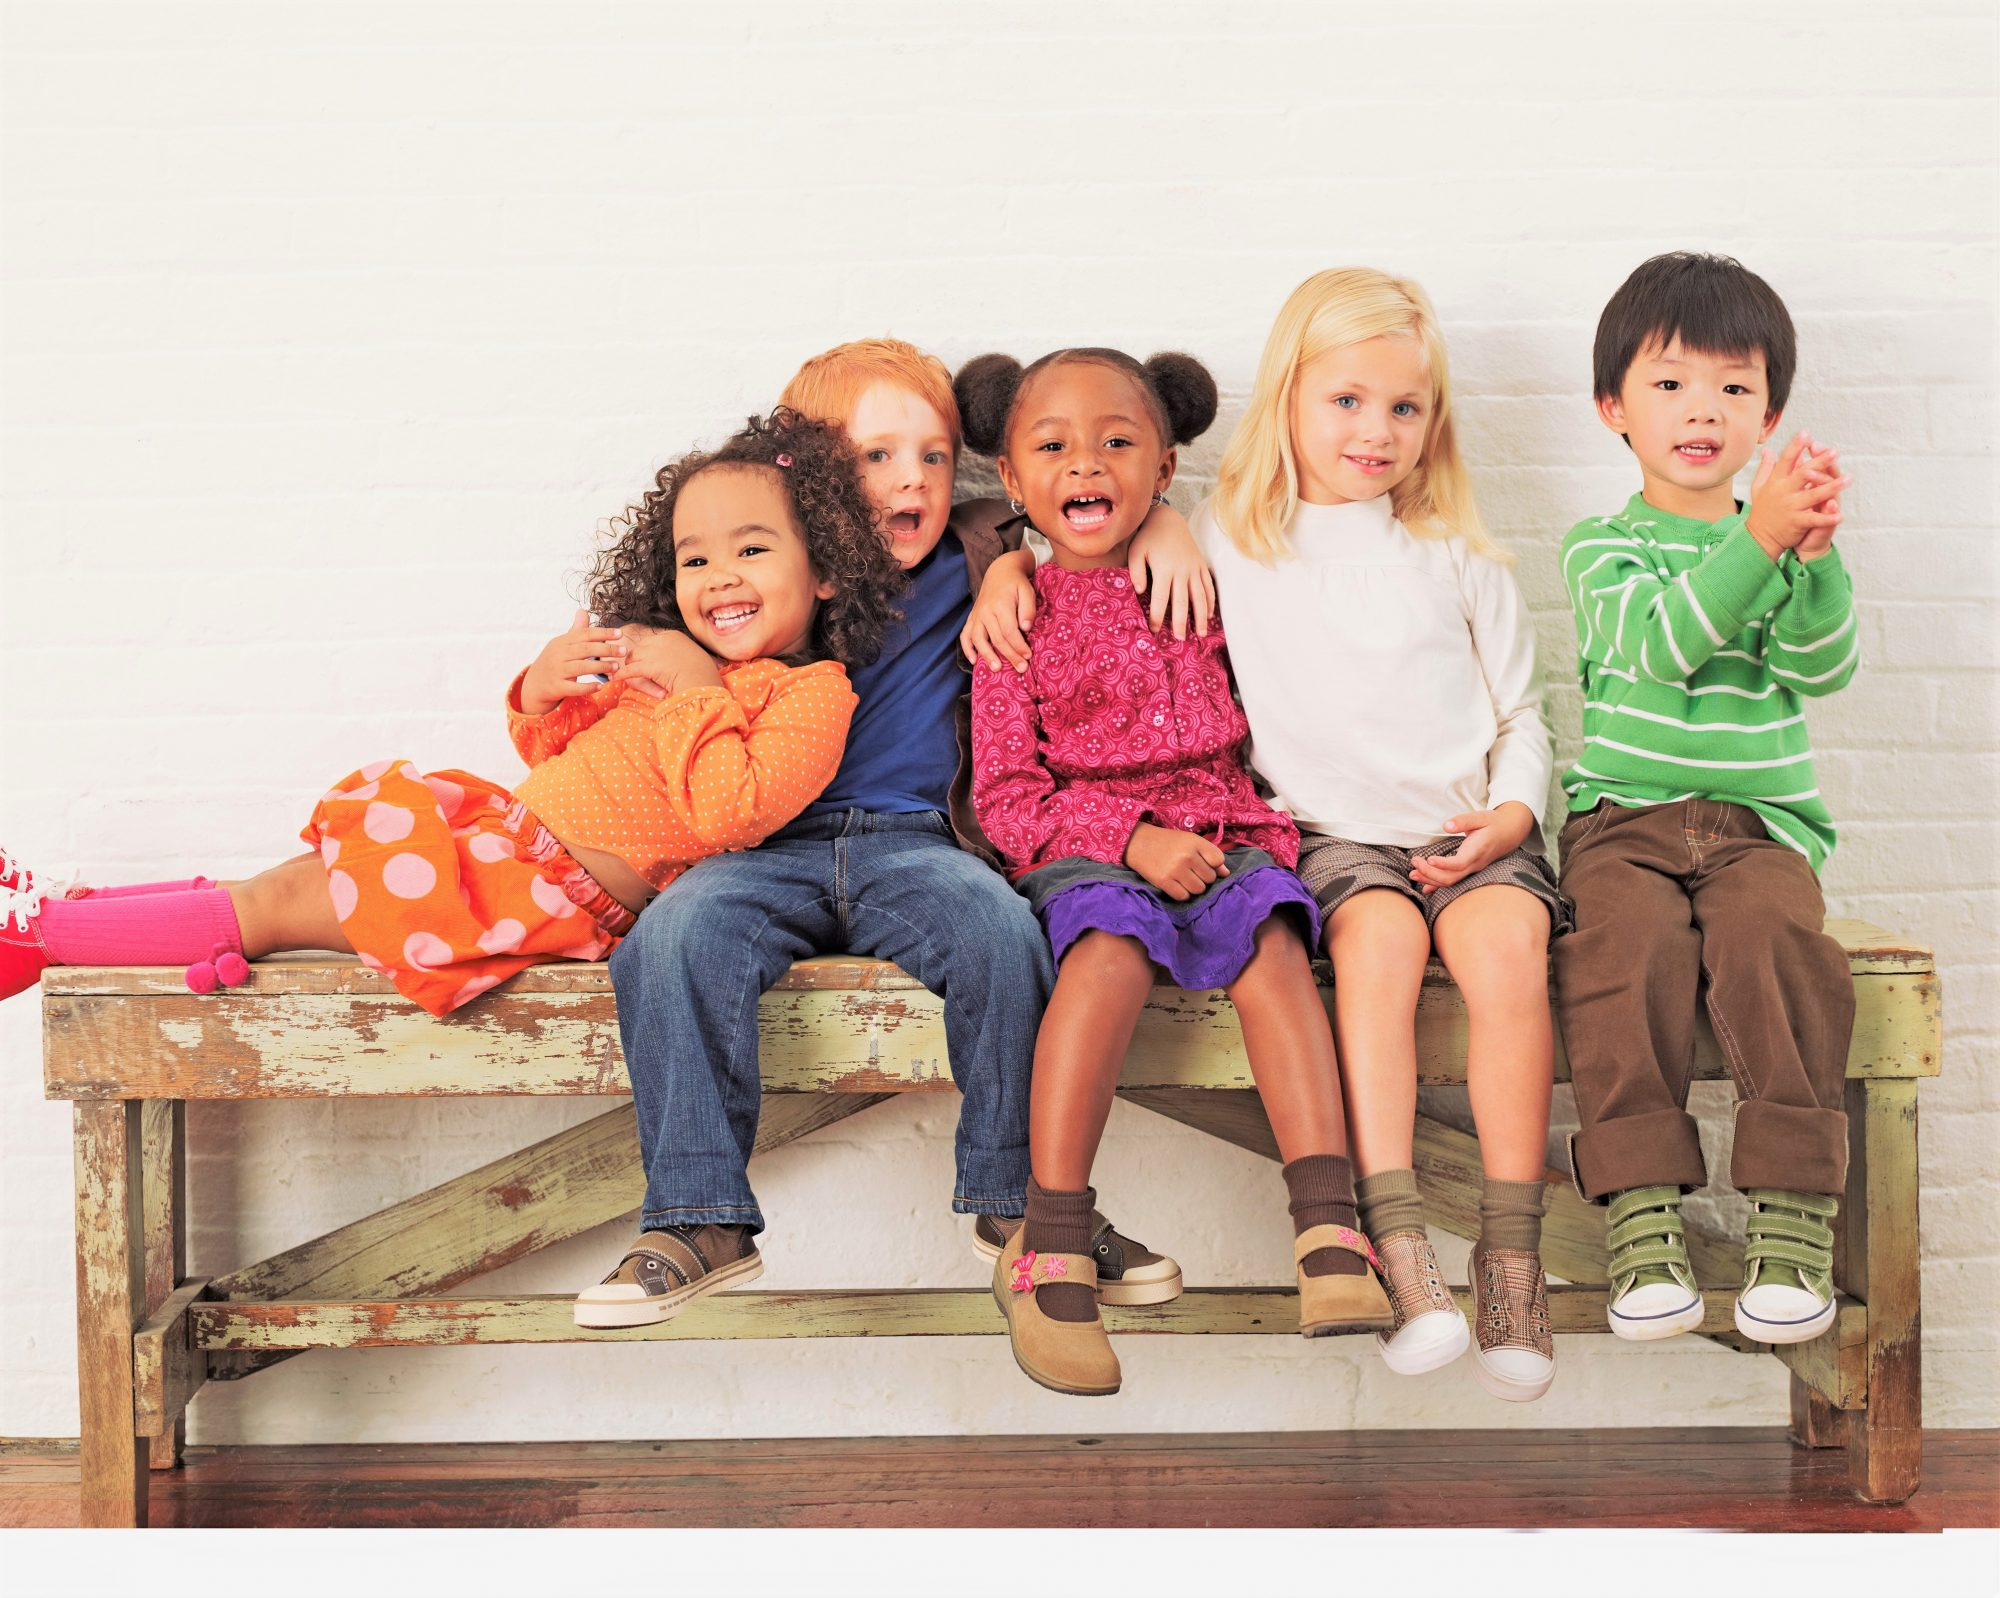 group of diverse children sitting on bench